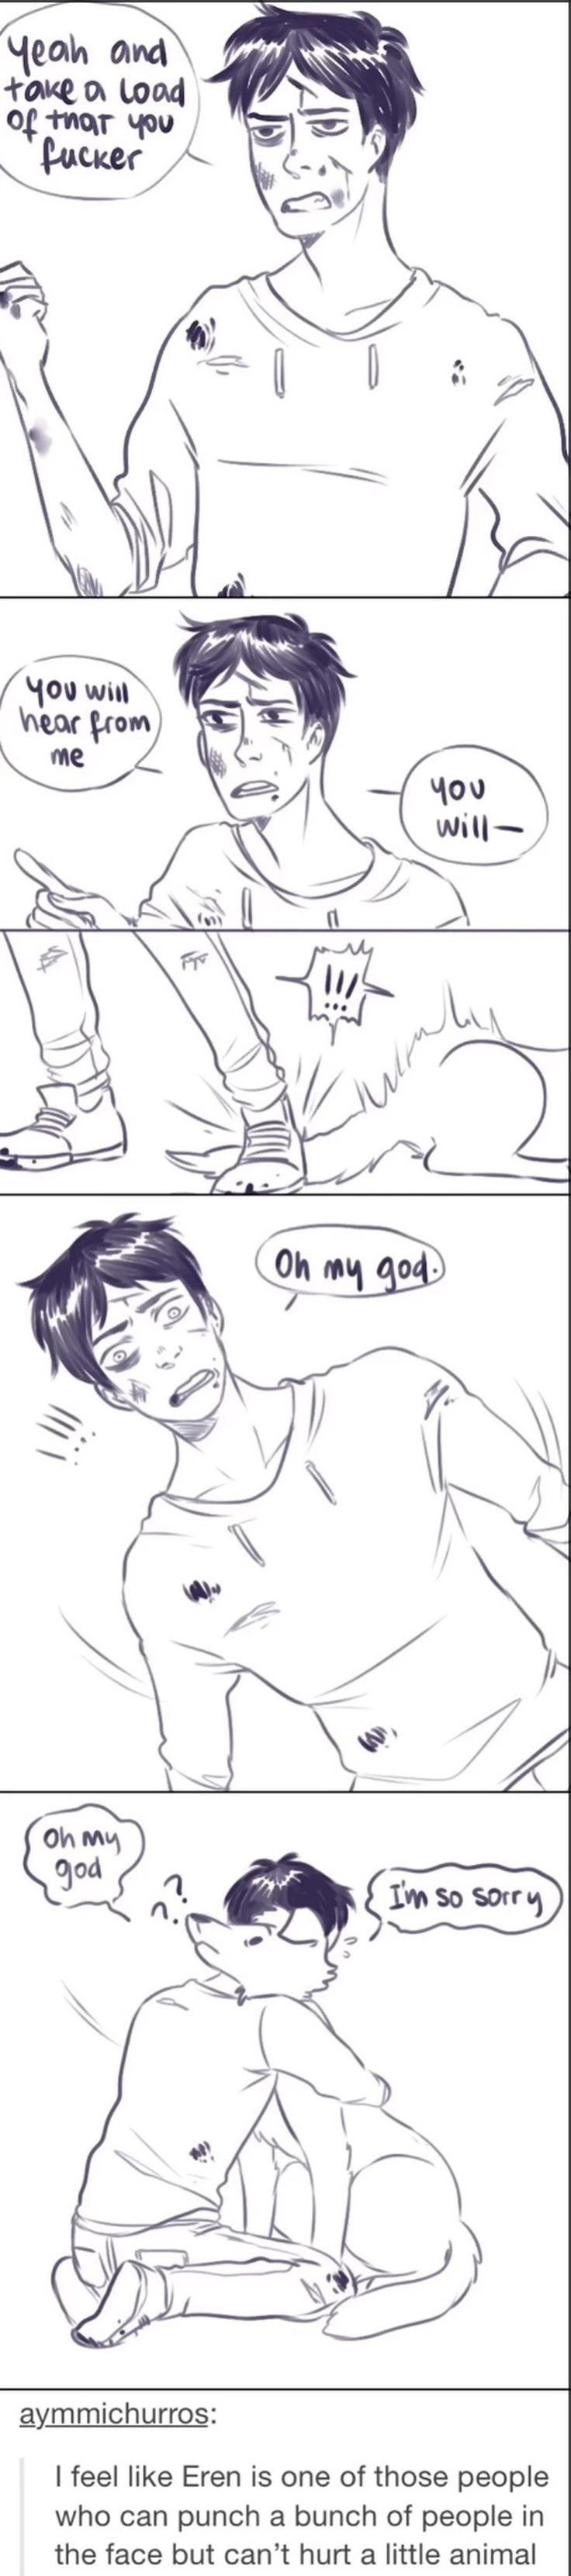 I think Eren would be one of those people.